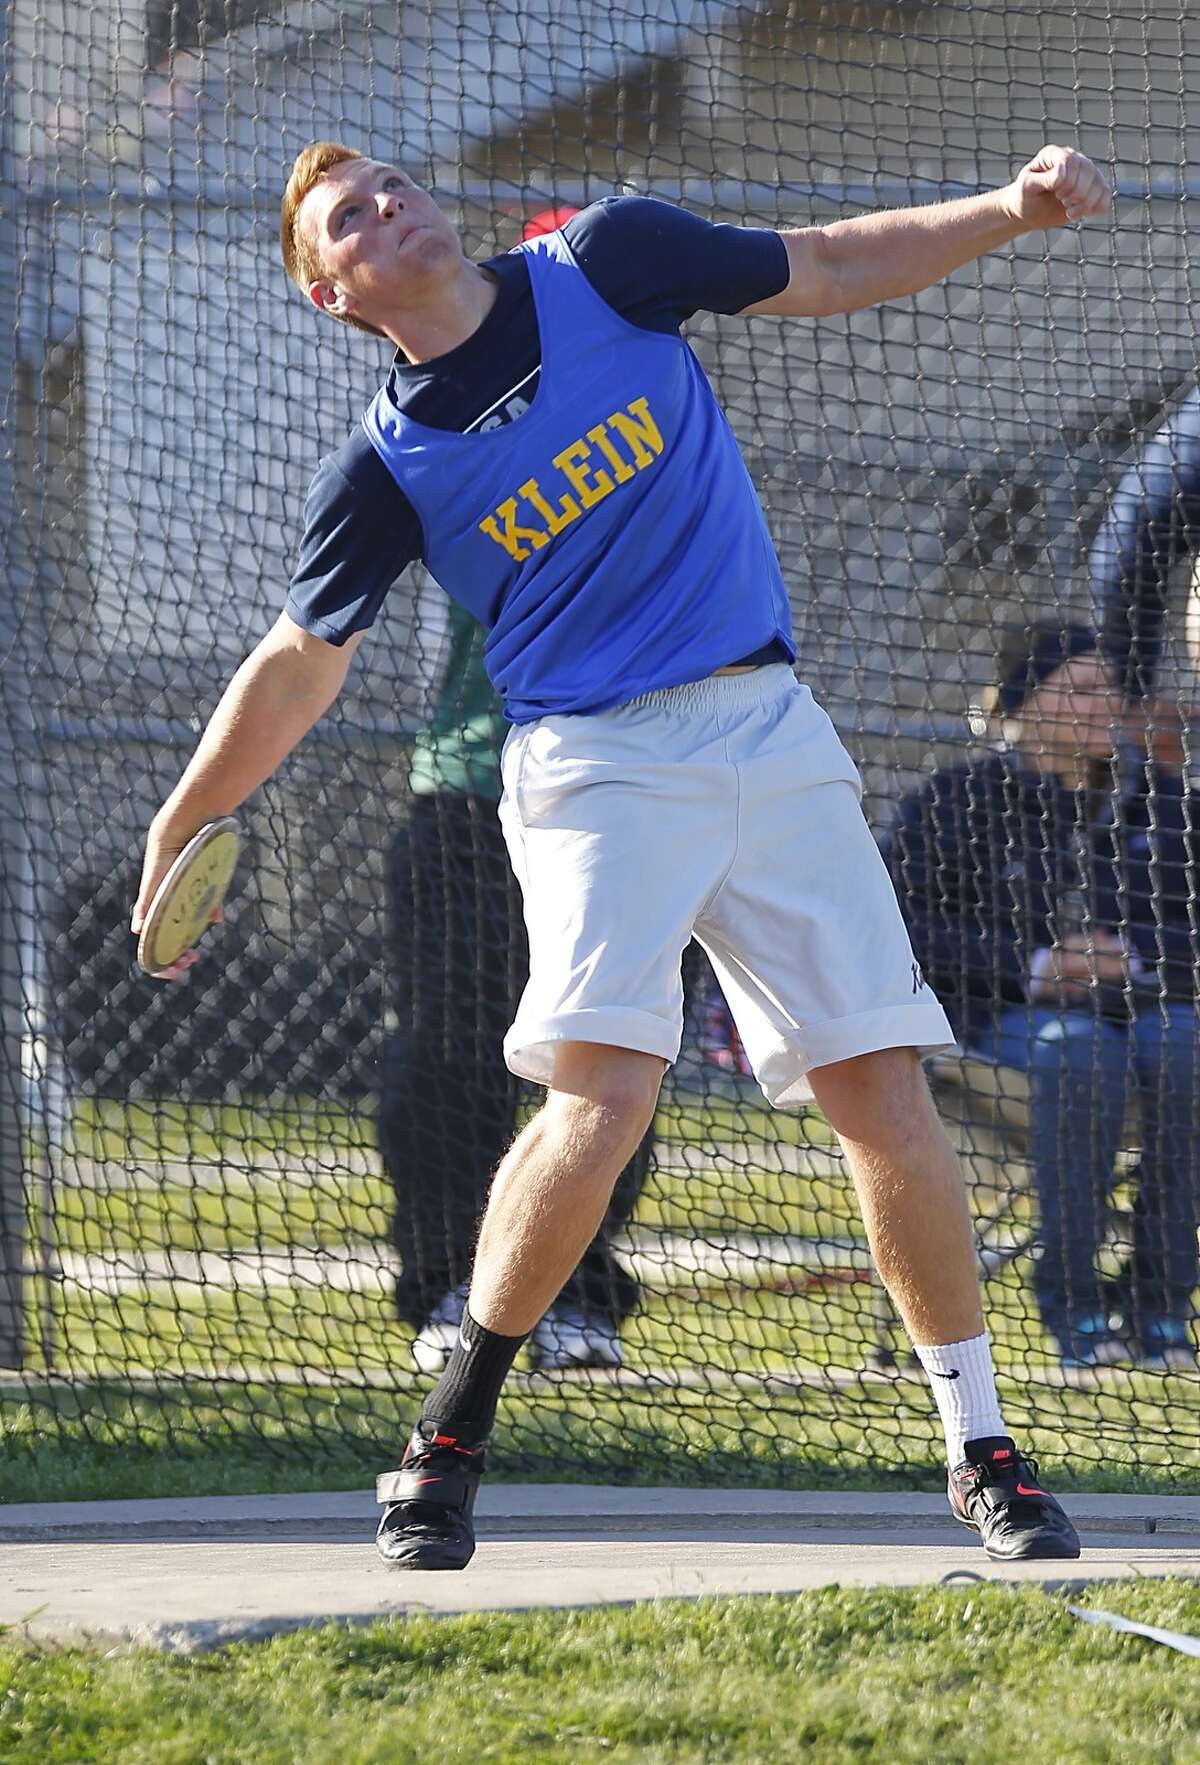 """Brody Gowing of Klein High School makes his first place winning discus throw of 167' 2"""" at the District 13/14 5A Area Track meet held at Klein Memorial Stadium on April 15, 2014."""